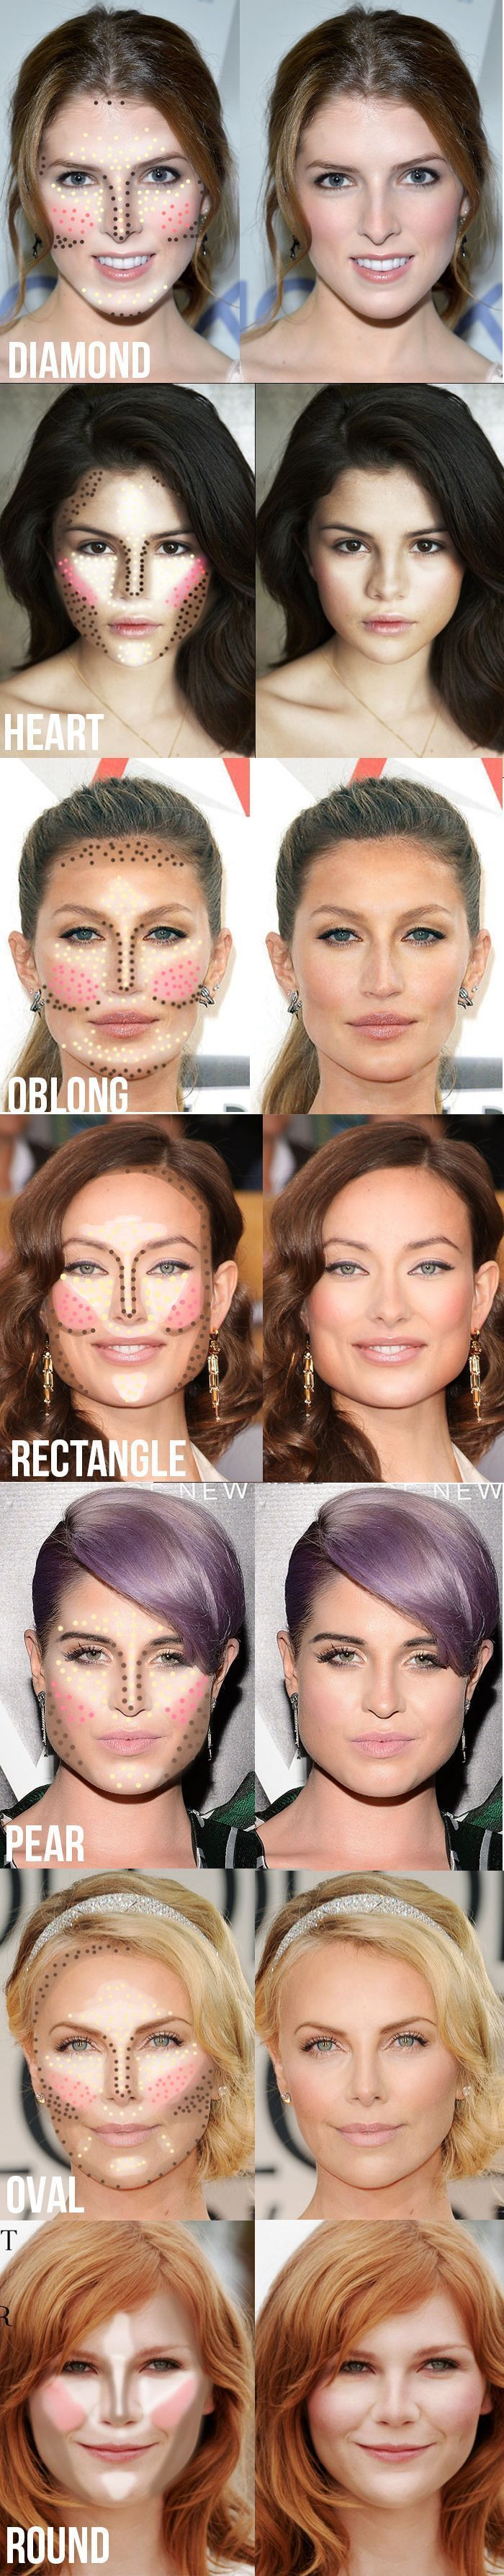 Highlighting and contouring guide for your face shape! (Hollygolightlyxox)